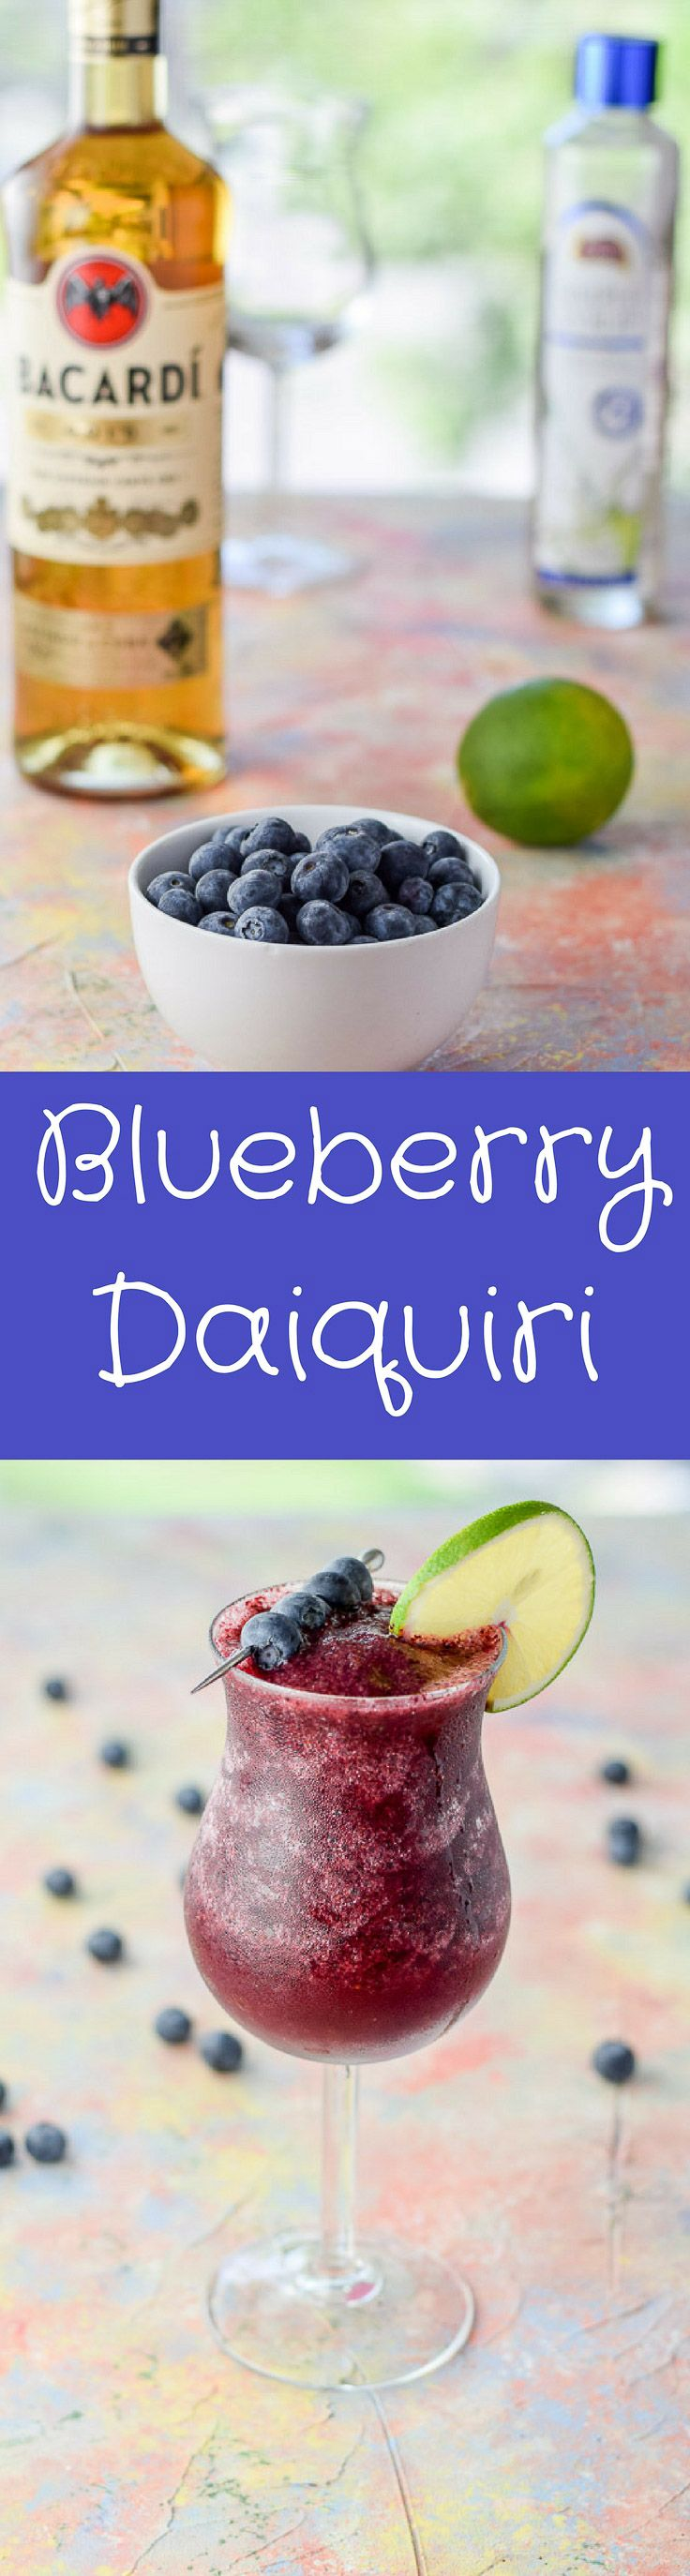 Bountiful Blueberry Daiquiri is both delicious and beautiful. But it doesn't stop there, it's also quite refreshing and satisfying! https://ddel.co/bluedaiq